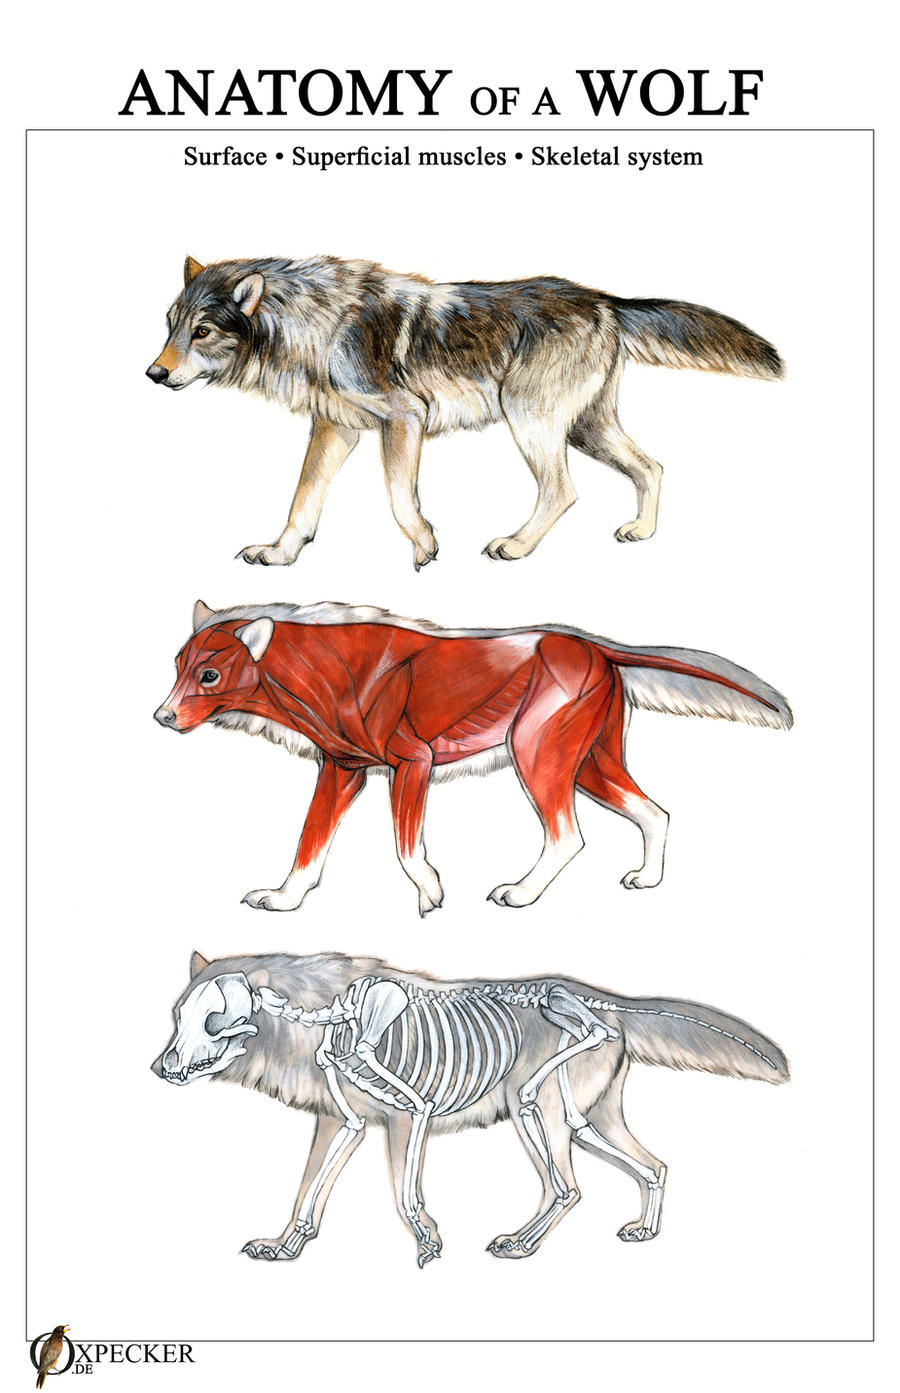 cow skull diagram anatomy of a wolf by oxpecker on deviantart  anatomy of a wolf by oxpecker on deviantart